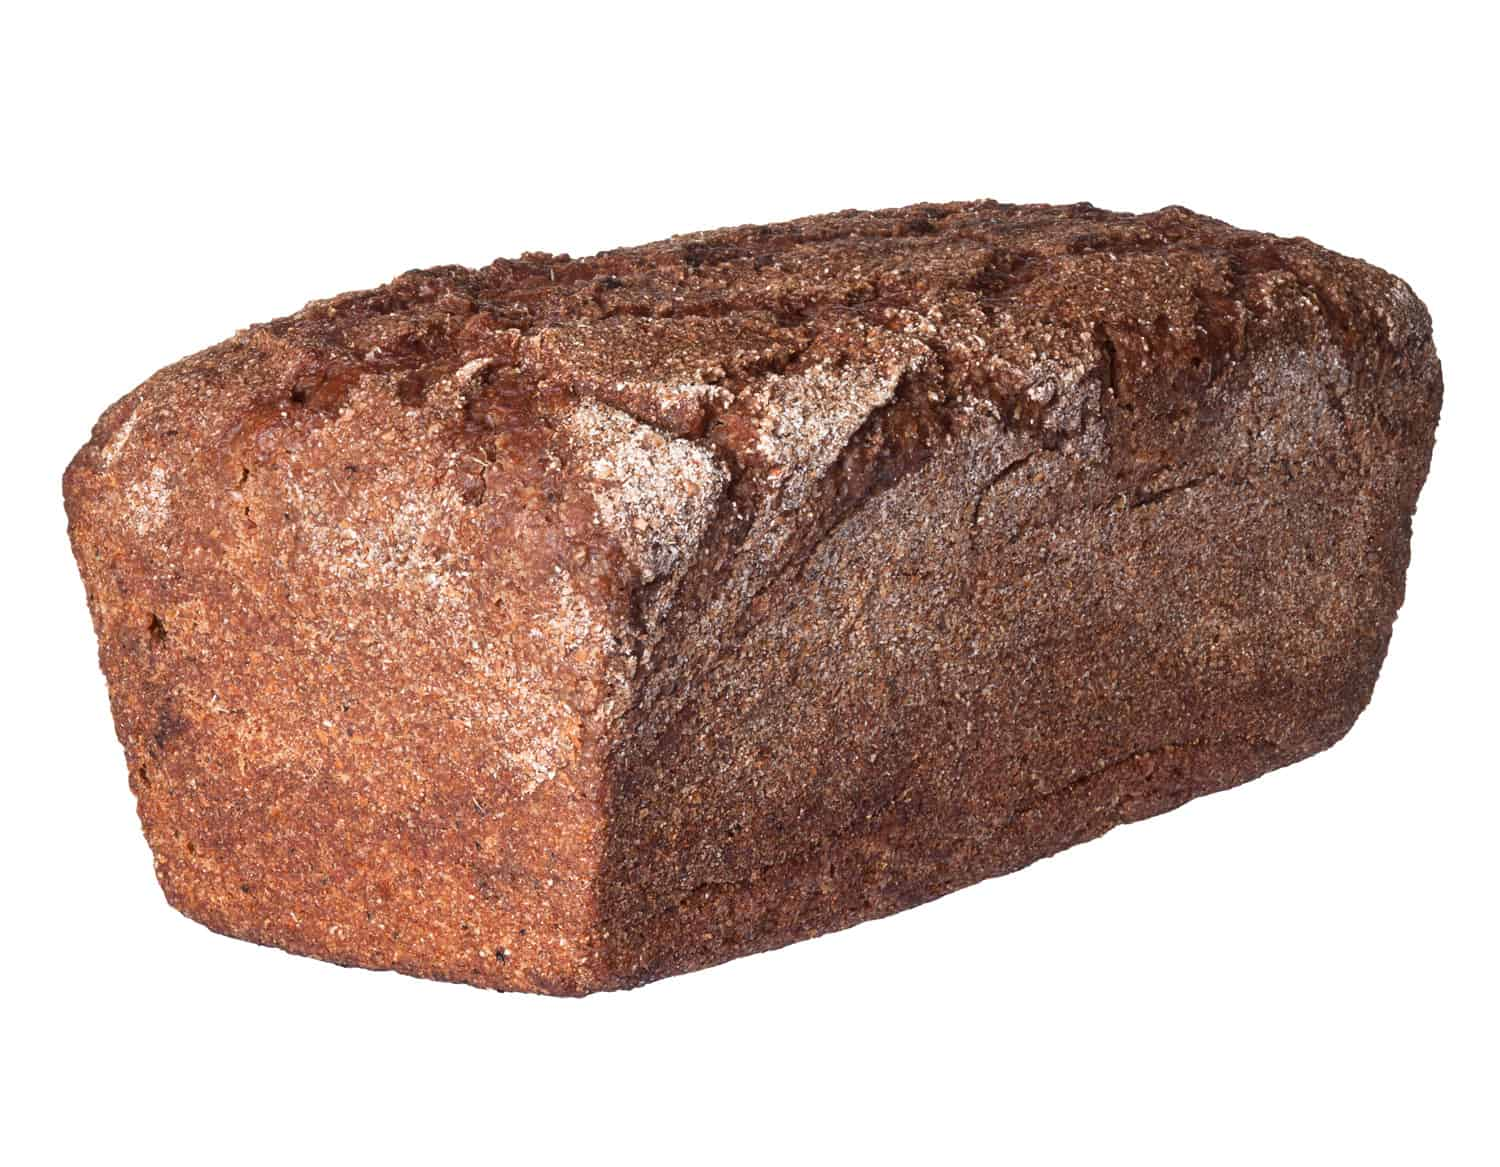 Loaf of rye bread isolated on white background